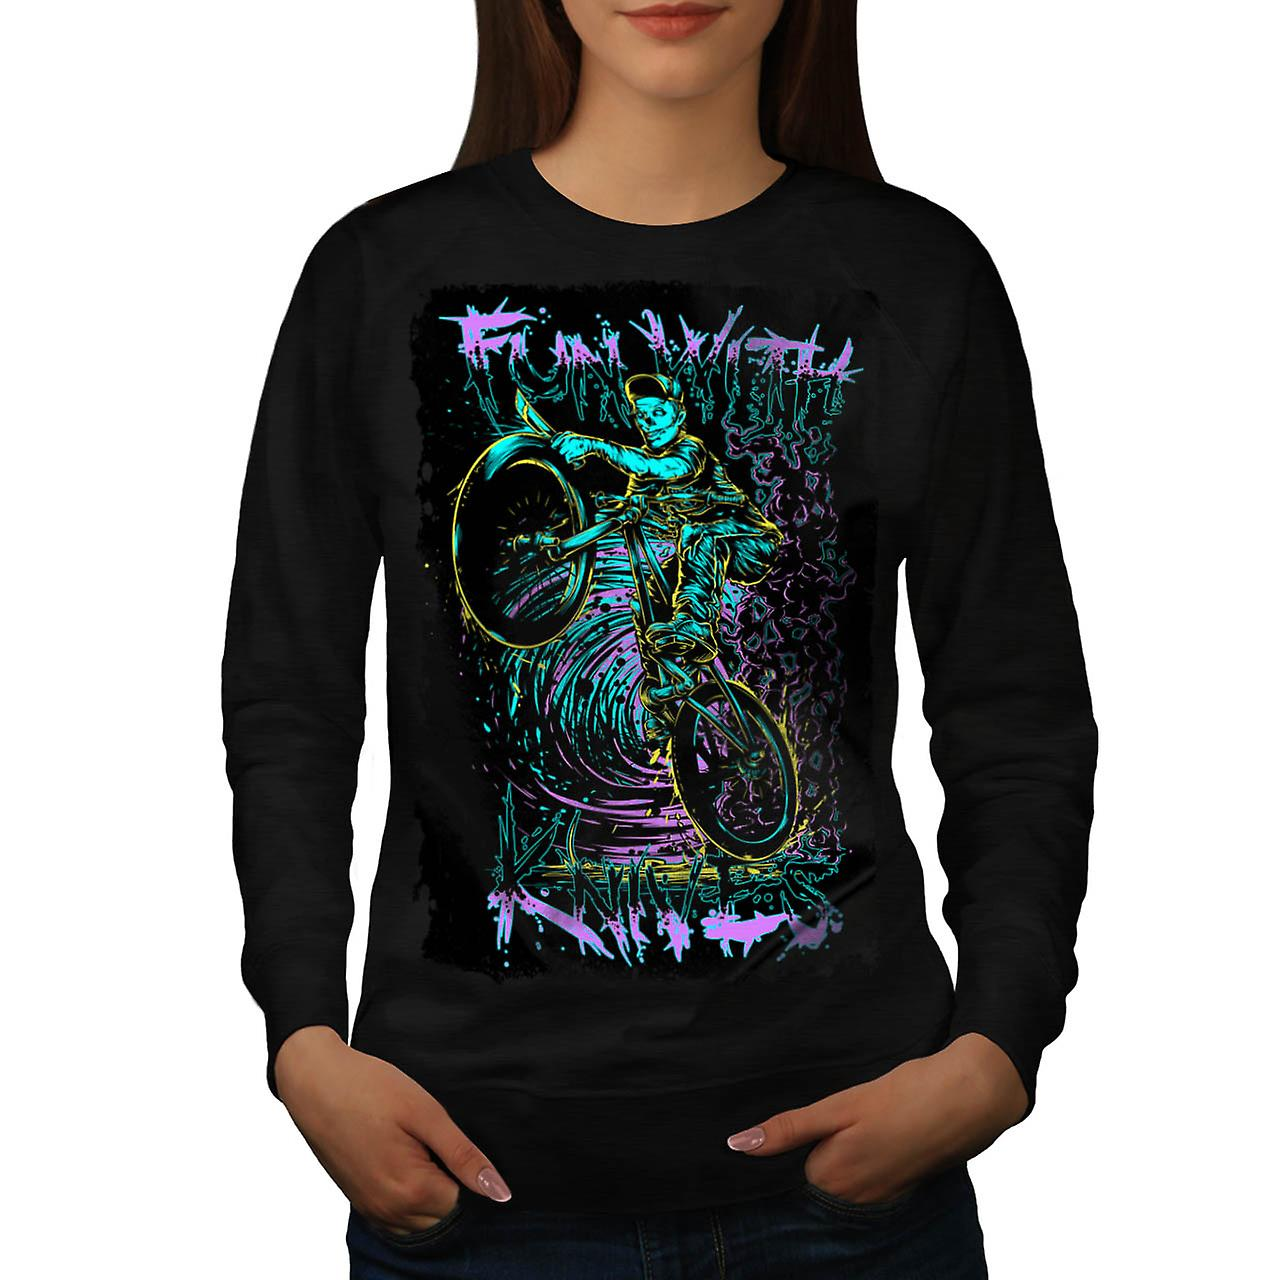 Fun With Knives Rider Zombie Bike Women Black Sweatshirt | Wellcoda